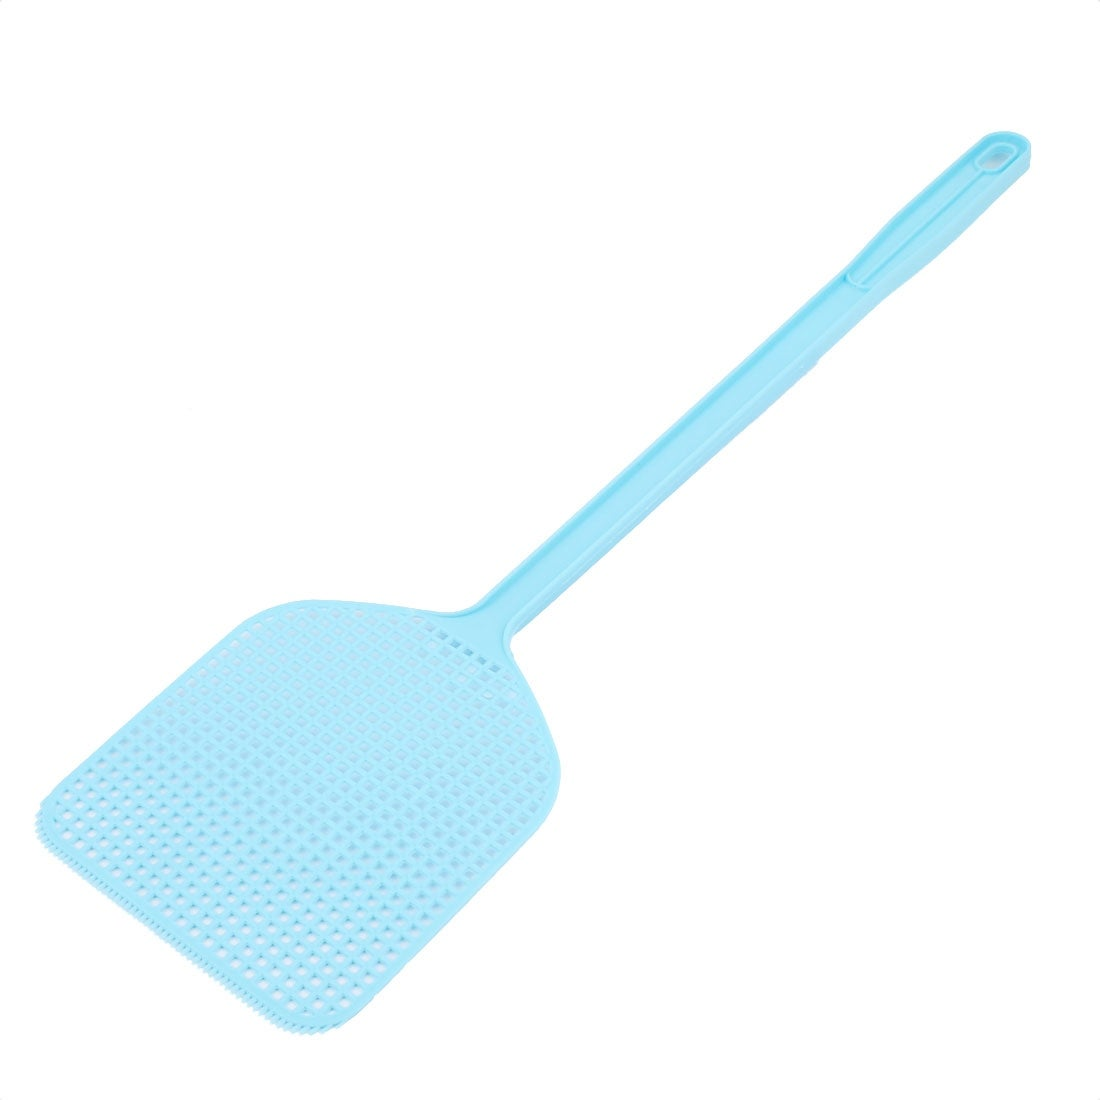 Shop Plastic Fly Swatter Bug Mosquito Insect Wasps Killer Swat Electronics Hobby Catcher Blue On Sale Free Shipping Orders Over 45 17588110